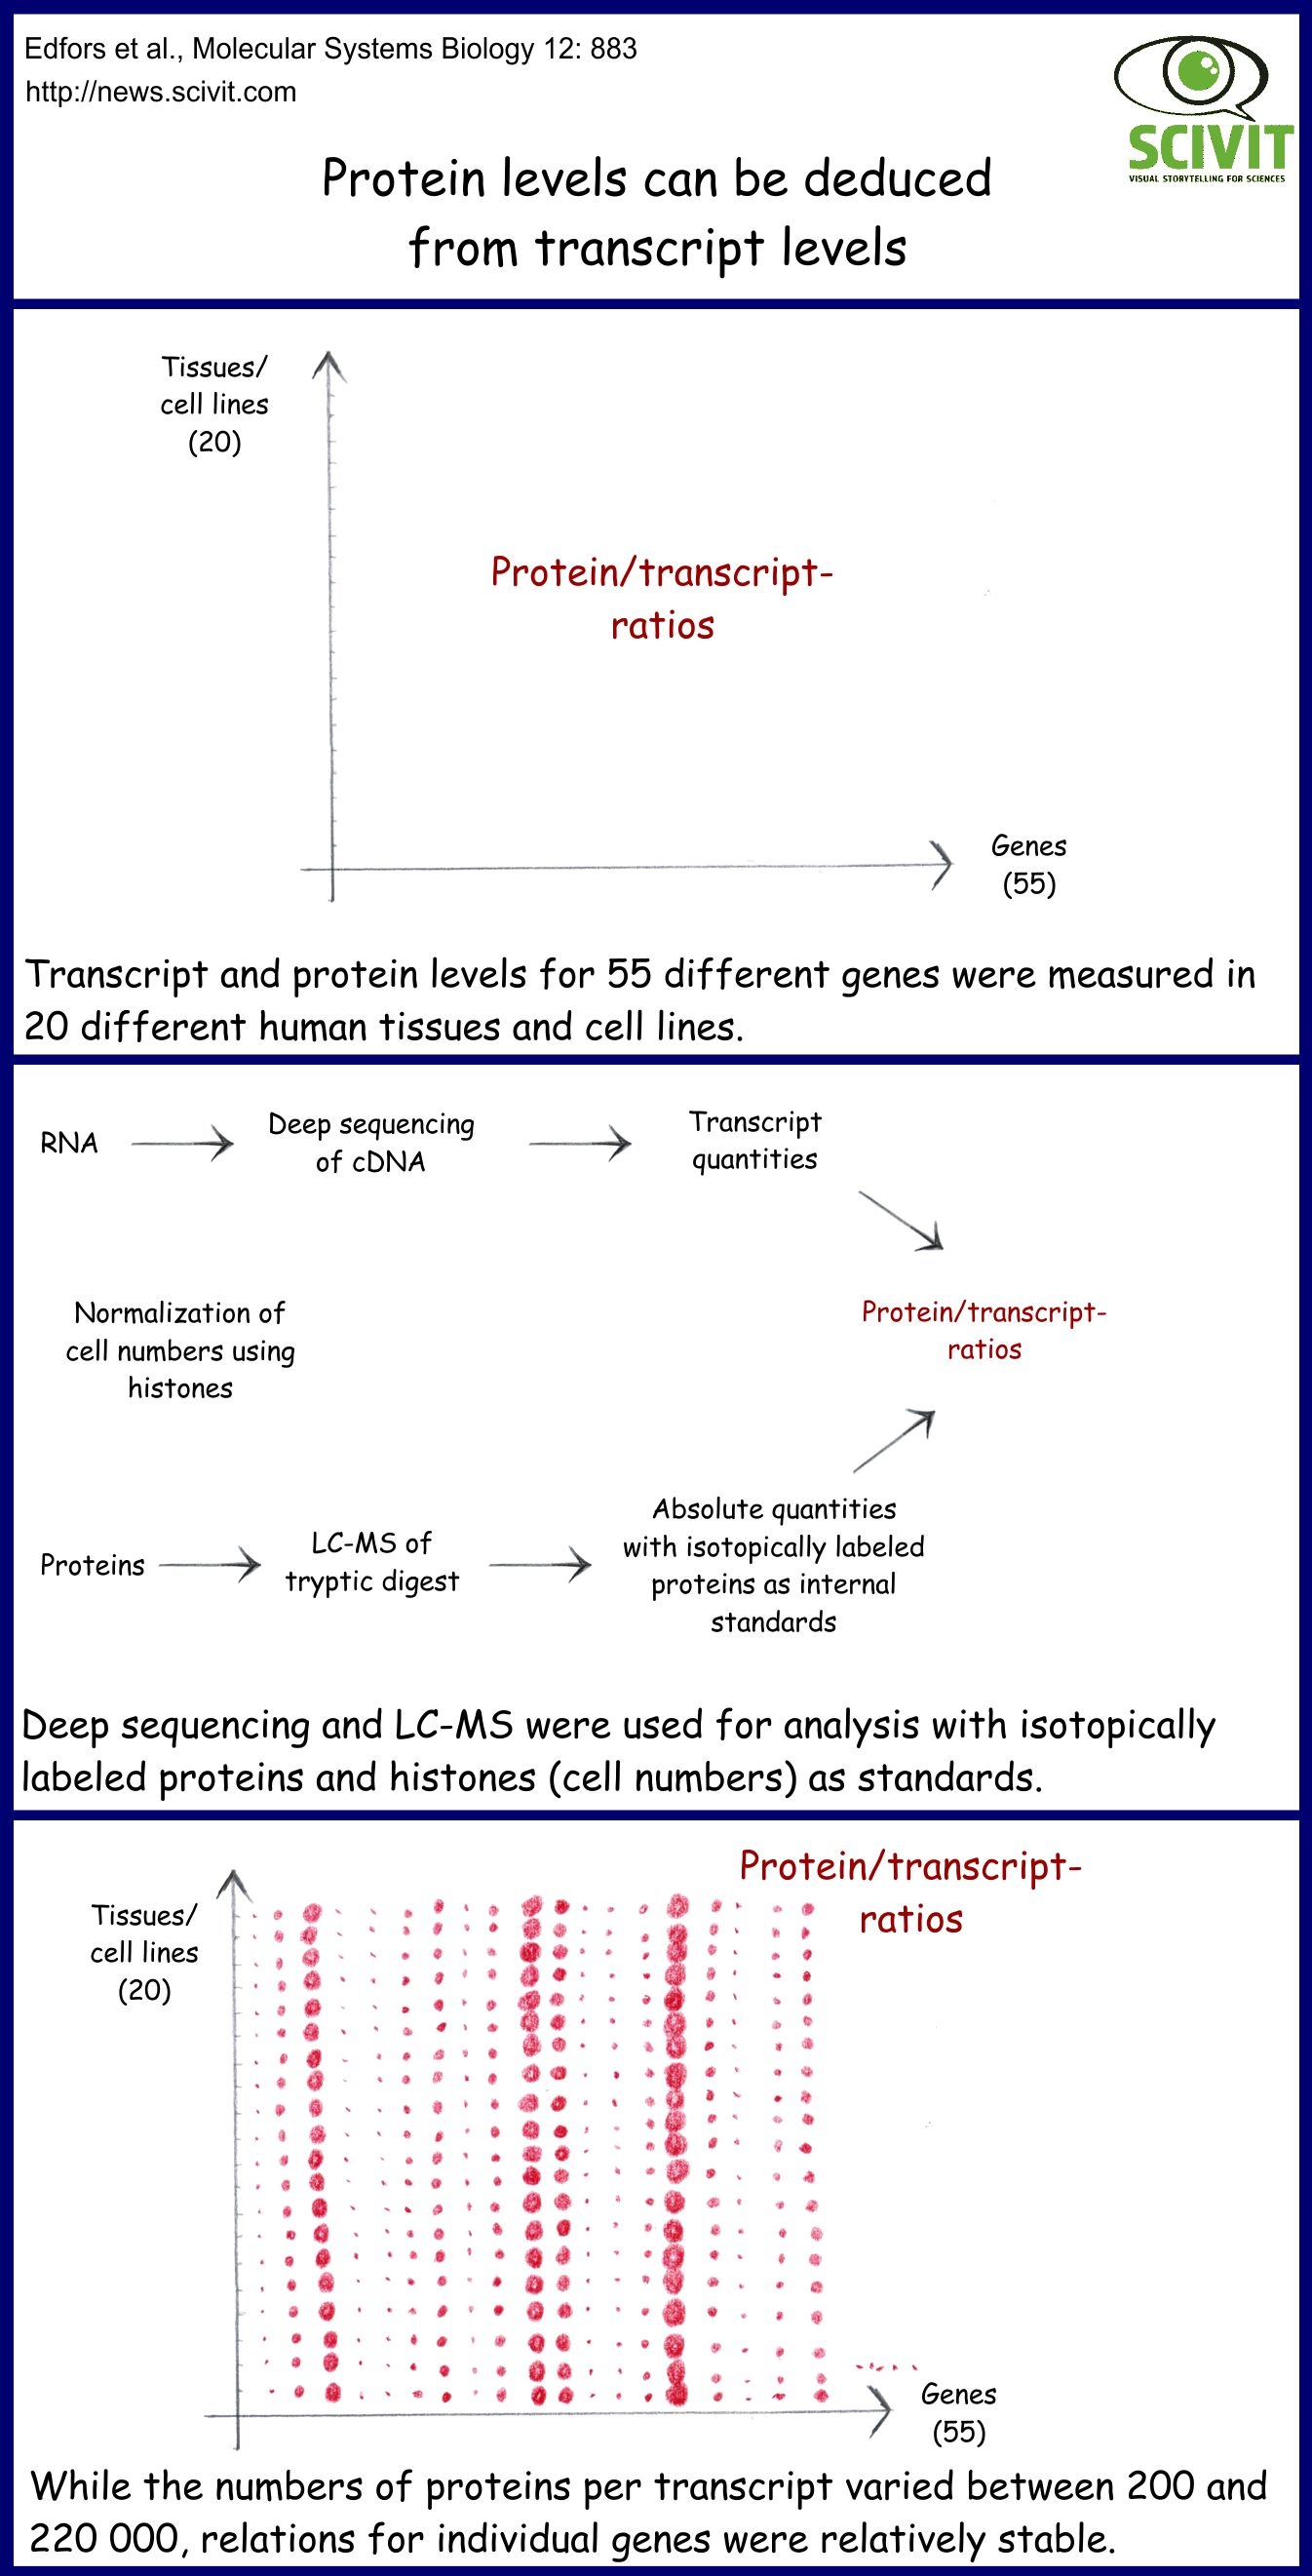 Protein levels can be deduced from transcript levels